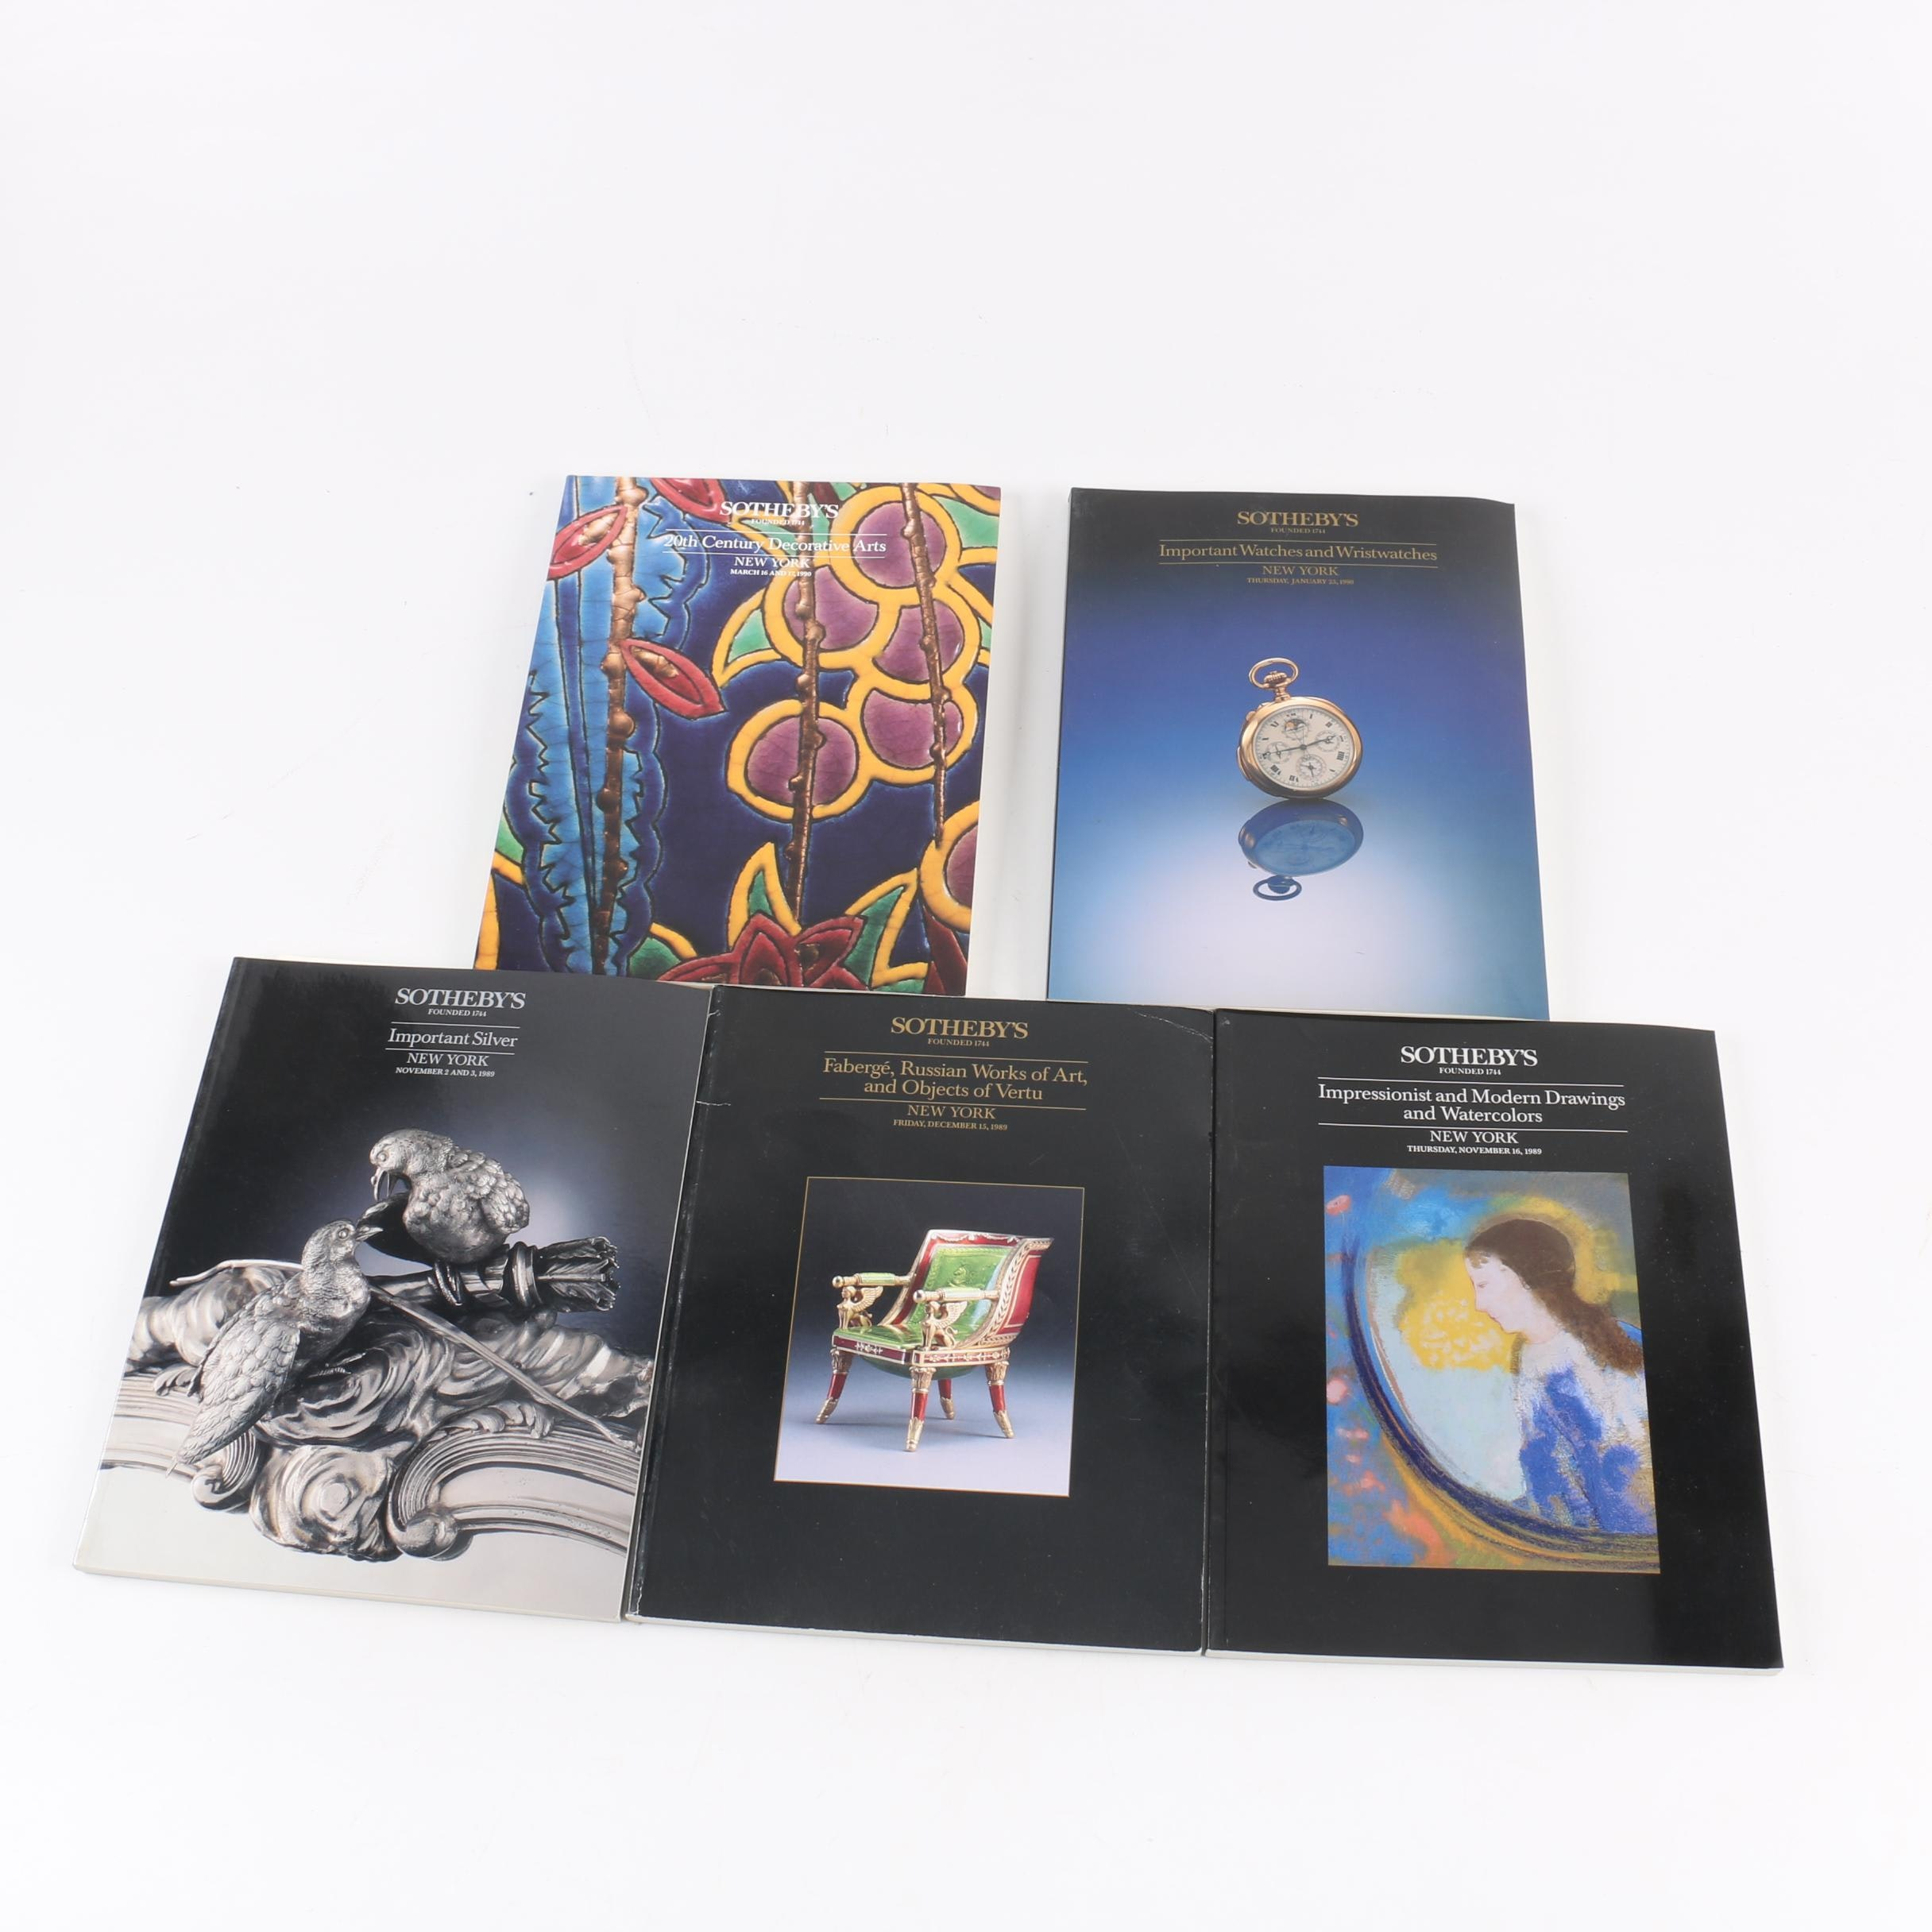 1989 - 1990 Sotheby's Catalogs